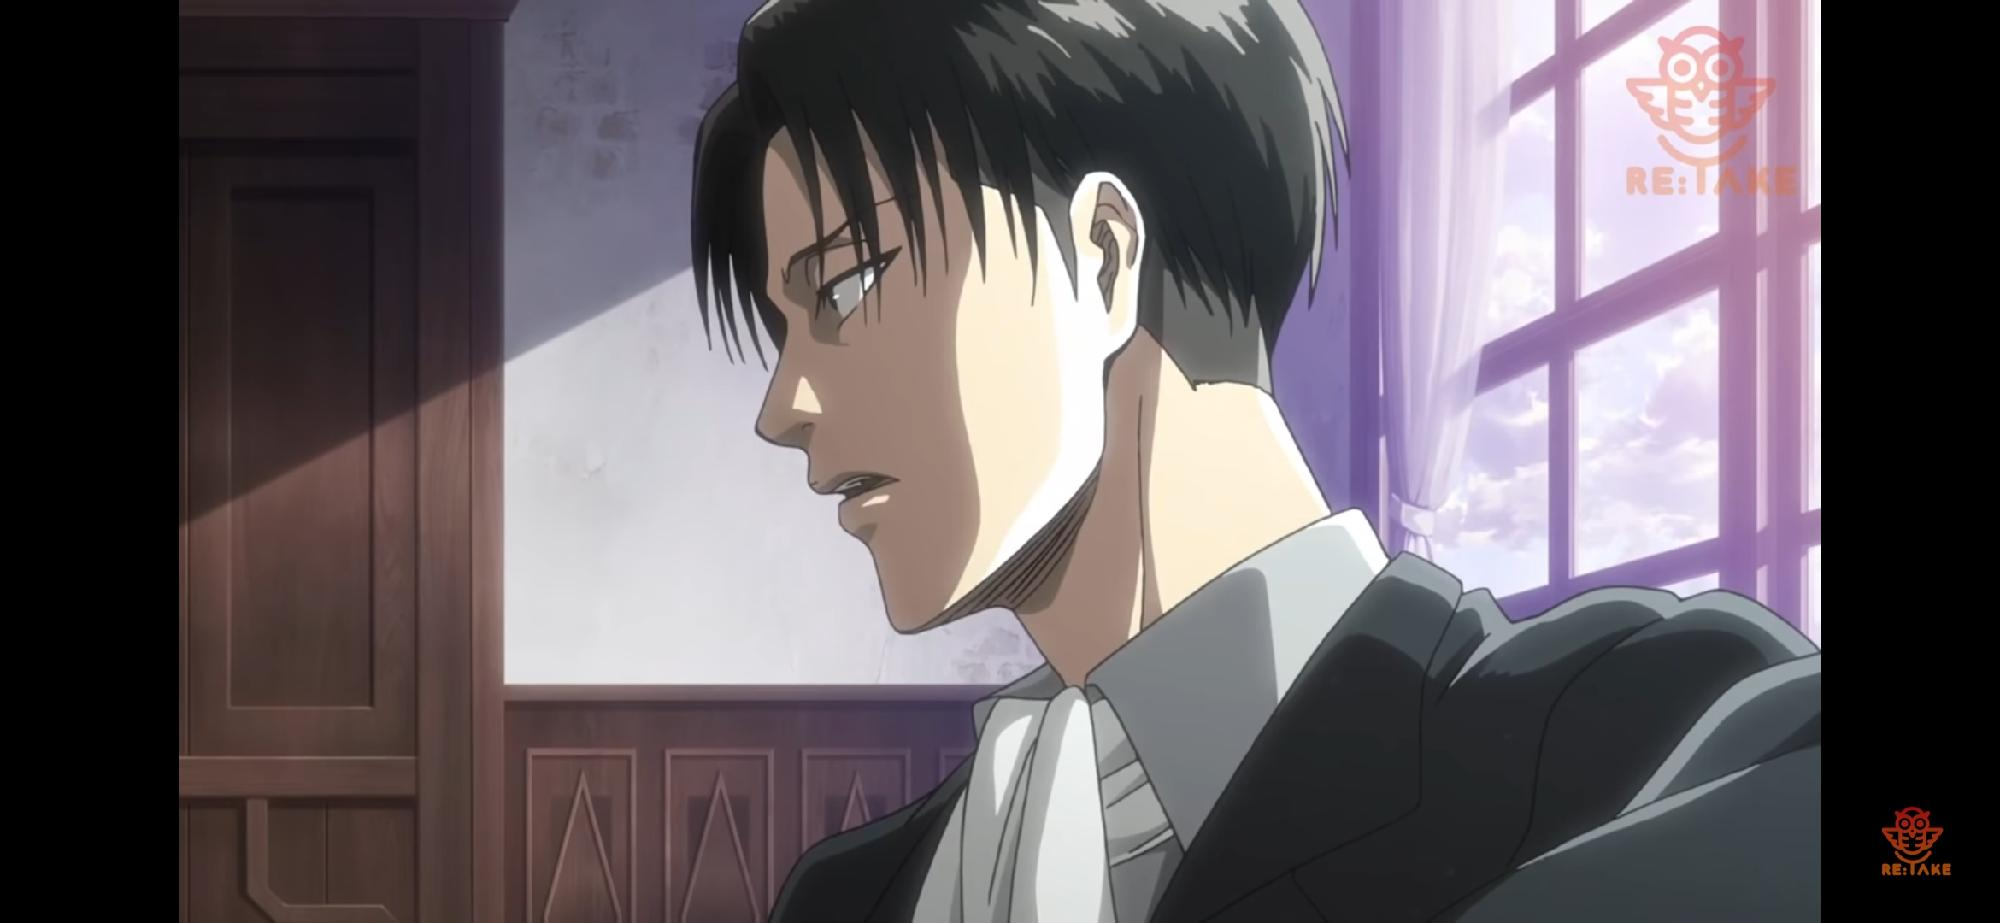 Levi the best